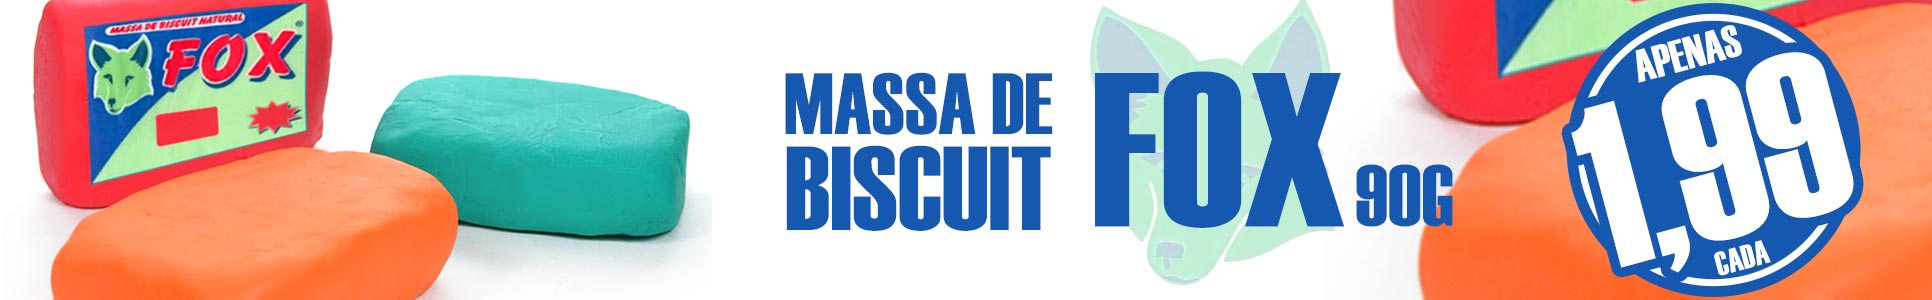 Massa de Biscuit Fox 90g R$ 1,99